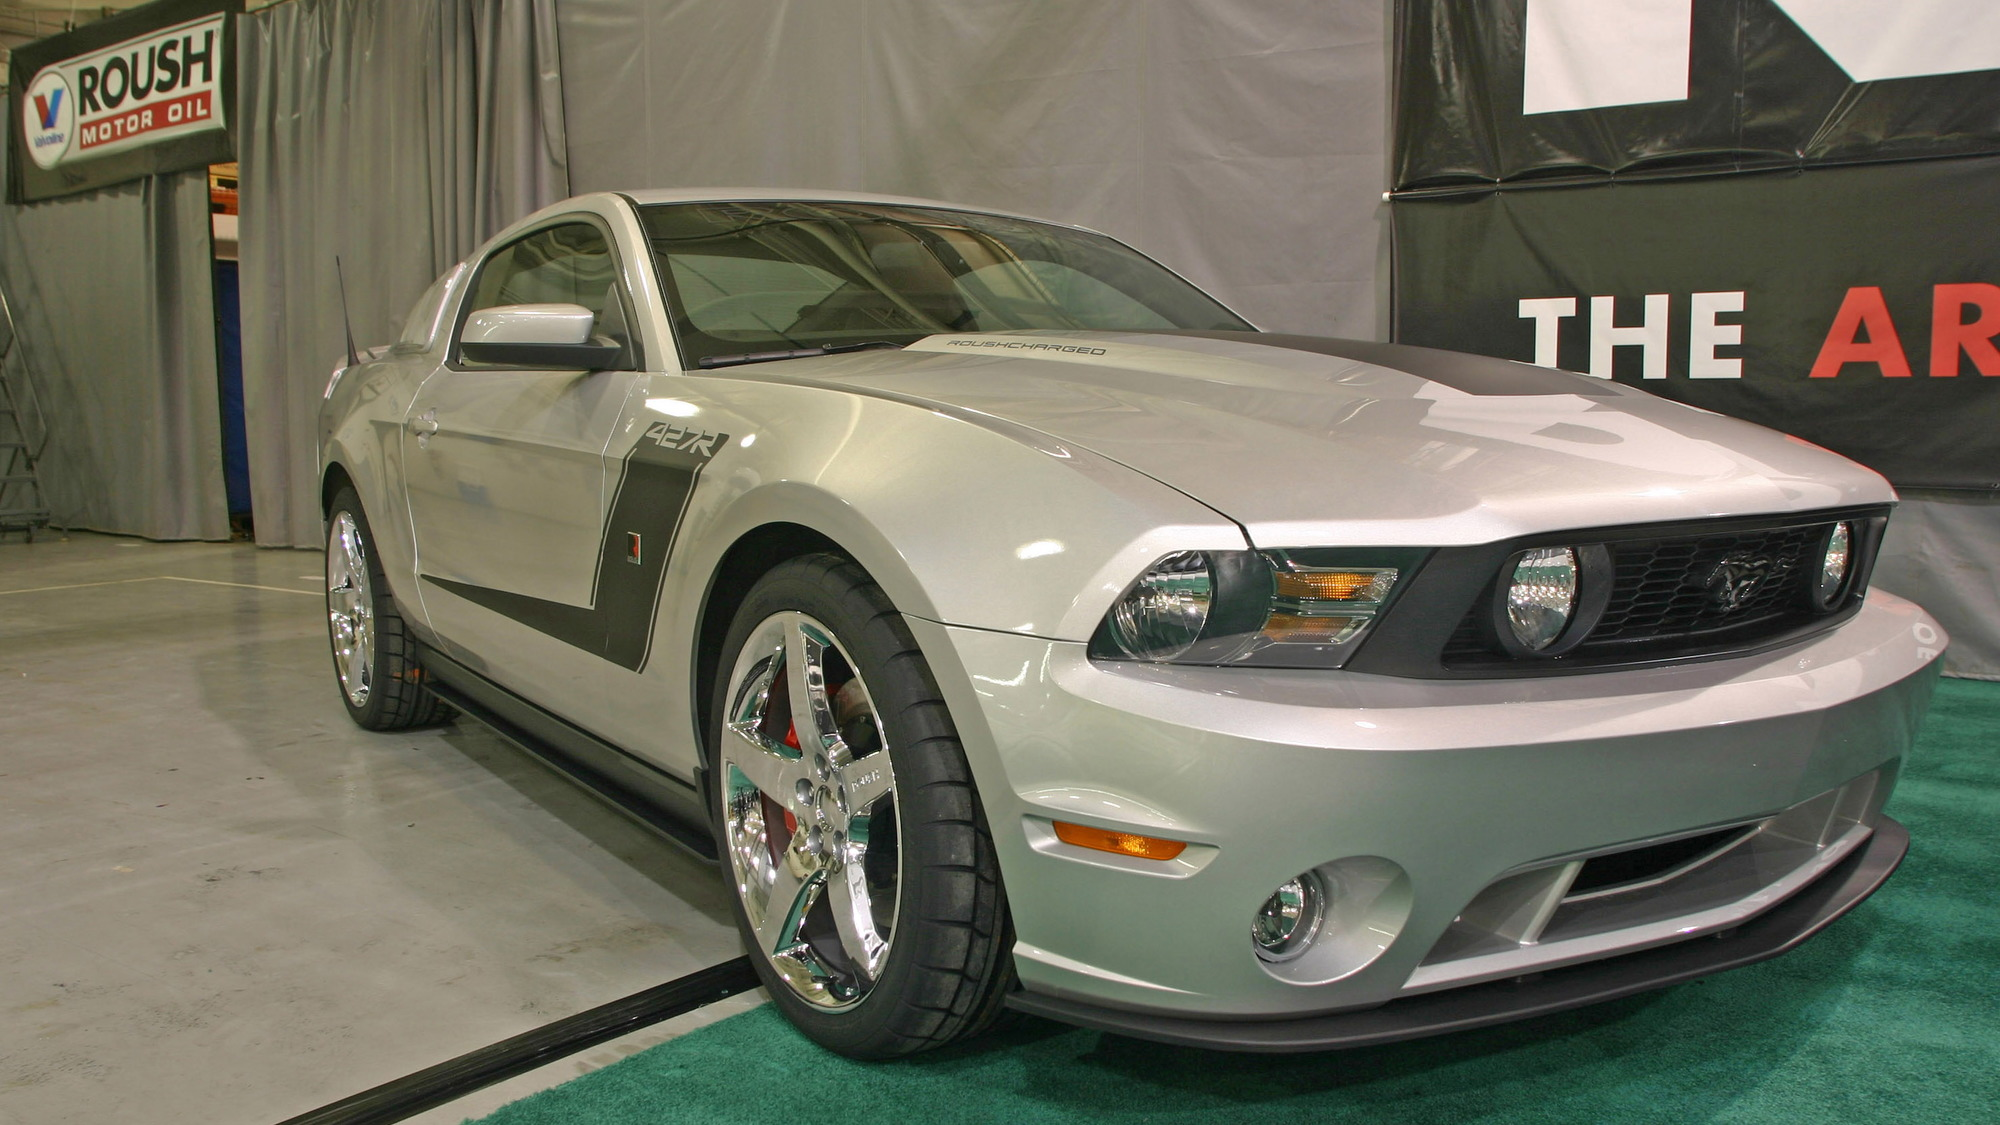 2010 Roush Mustang Coupe